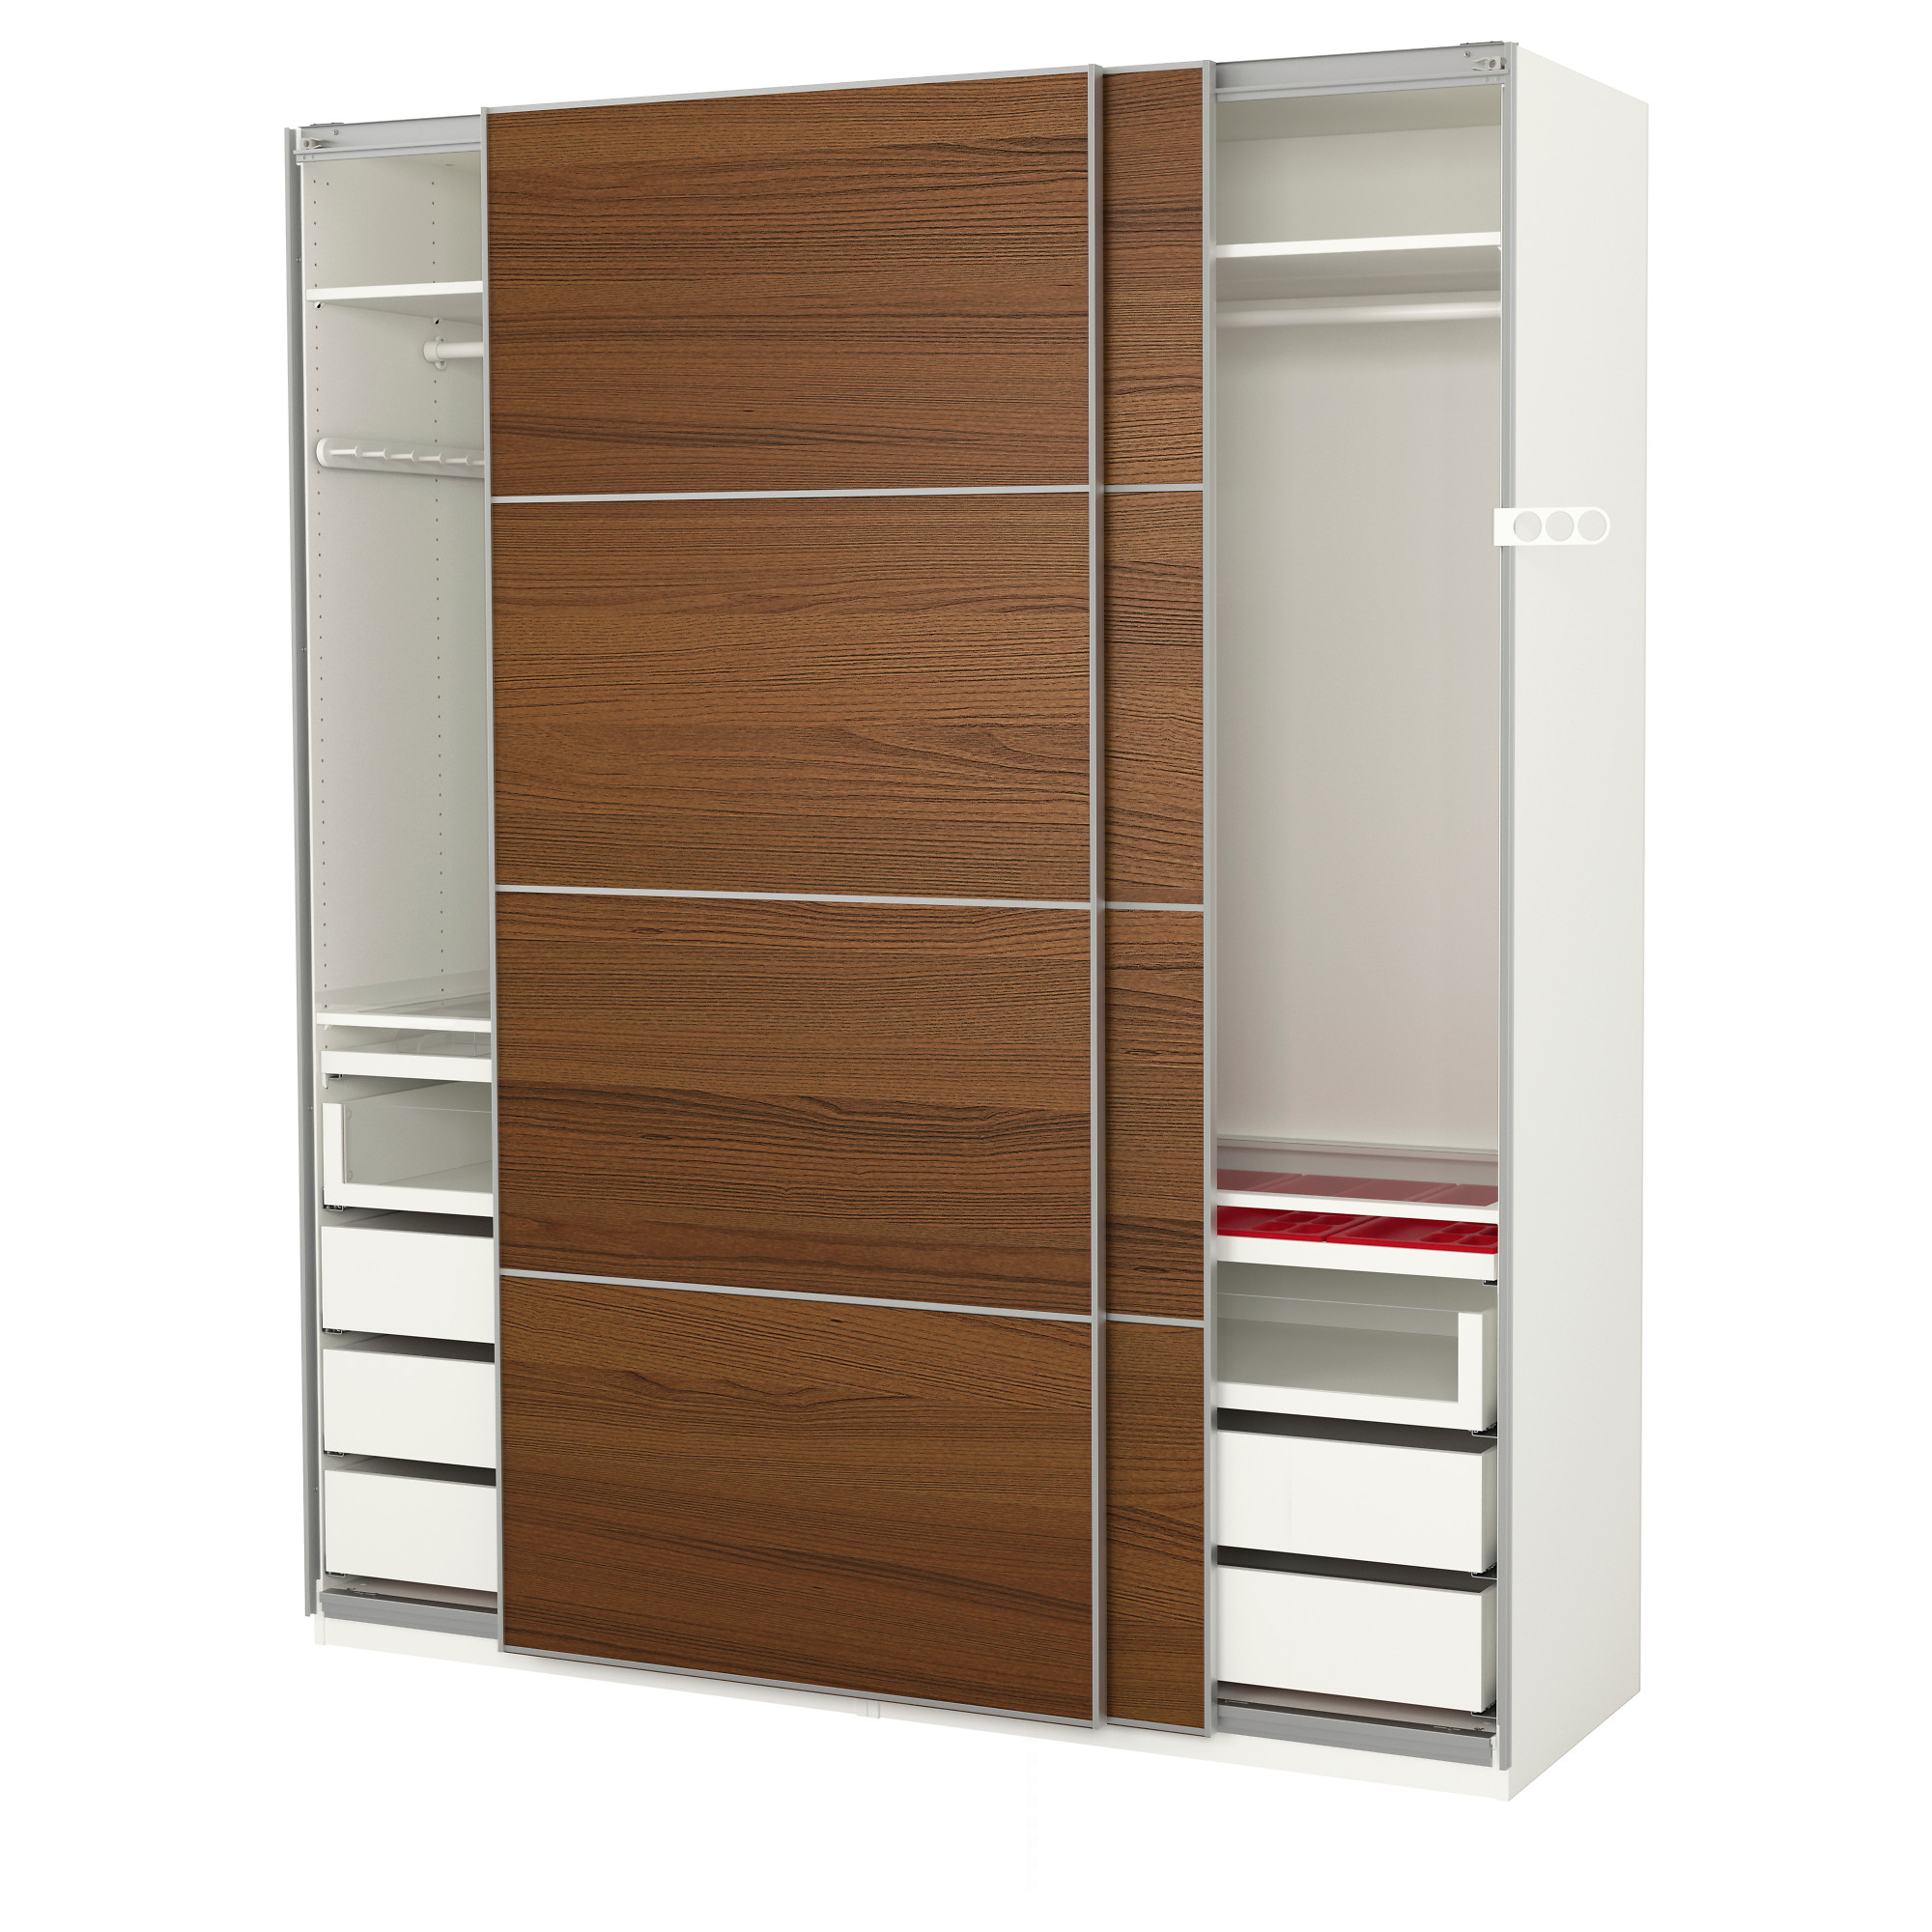 Wardrobe Storage Cabinet | Brusali Wardrobe | Wardrobe Moving Boxes